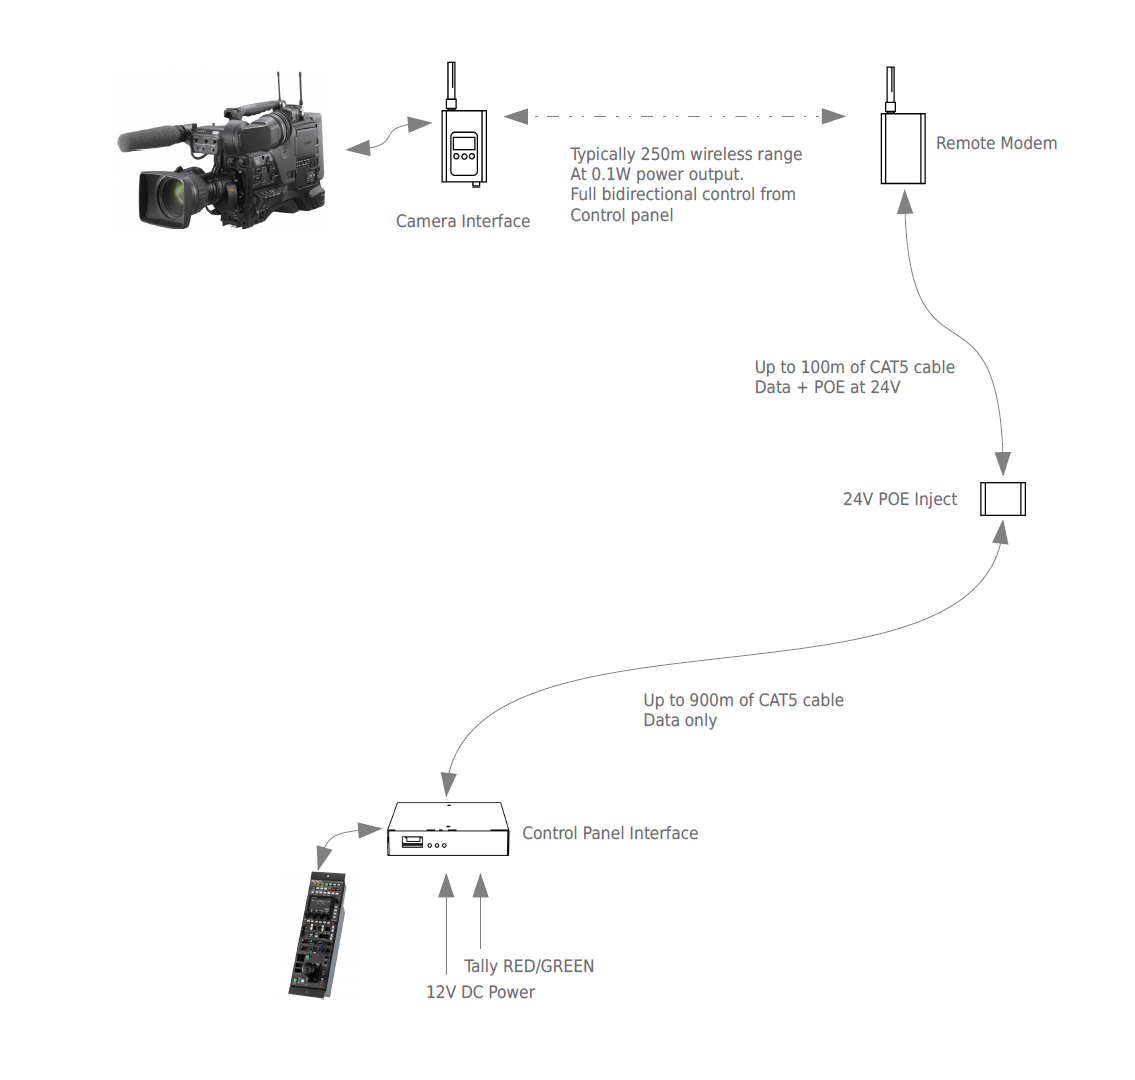 hight resolution of  cameras allowing remote operation with oem control panels operating on the 2 4ghz and 900mhz ism bands respectively these are ideal for a number of